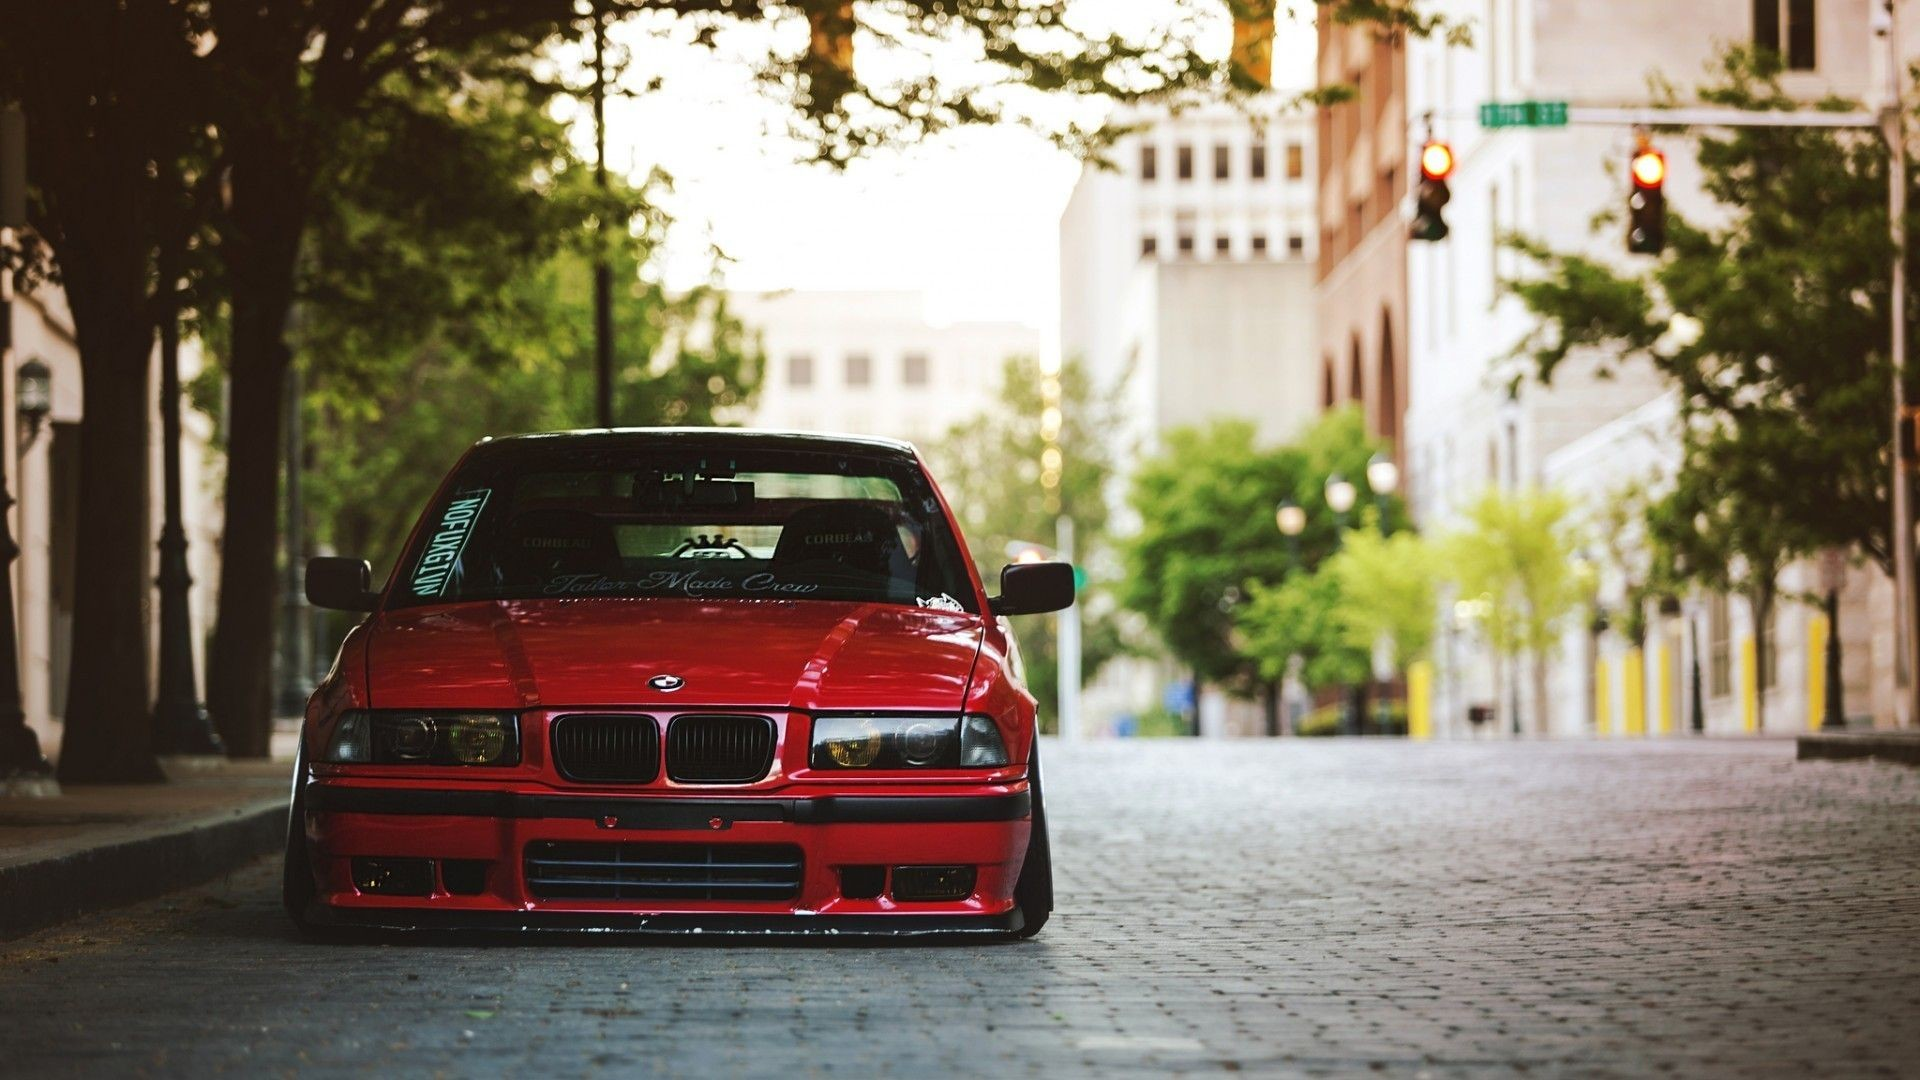 Bmw E36 Wallpapers Bmw E36 Wallpaper 4k 109205 Hd